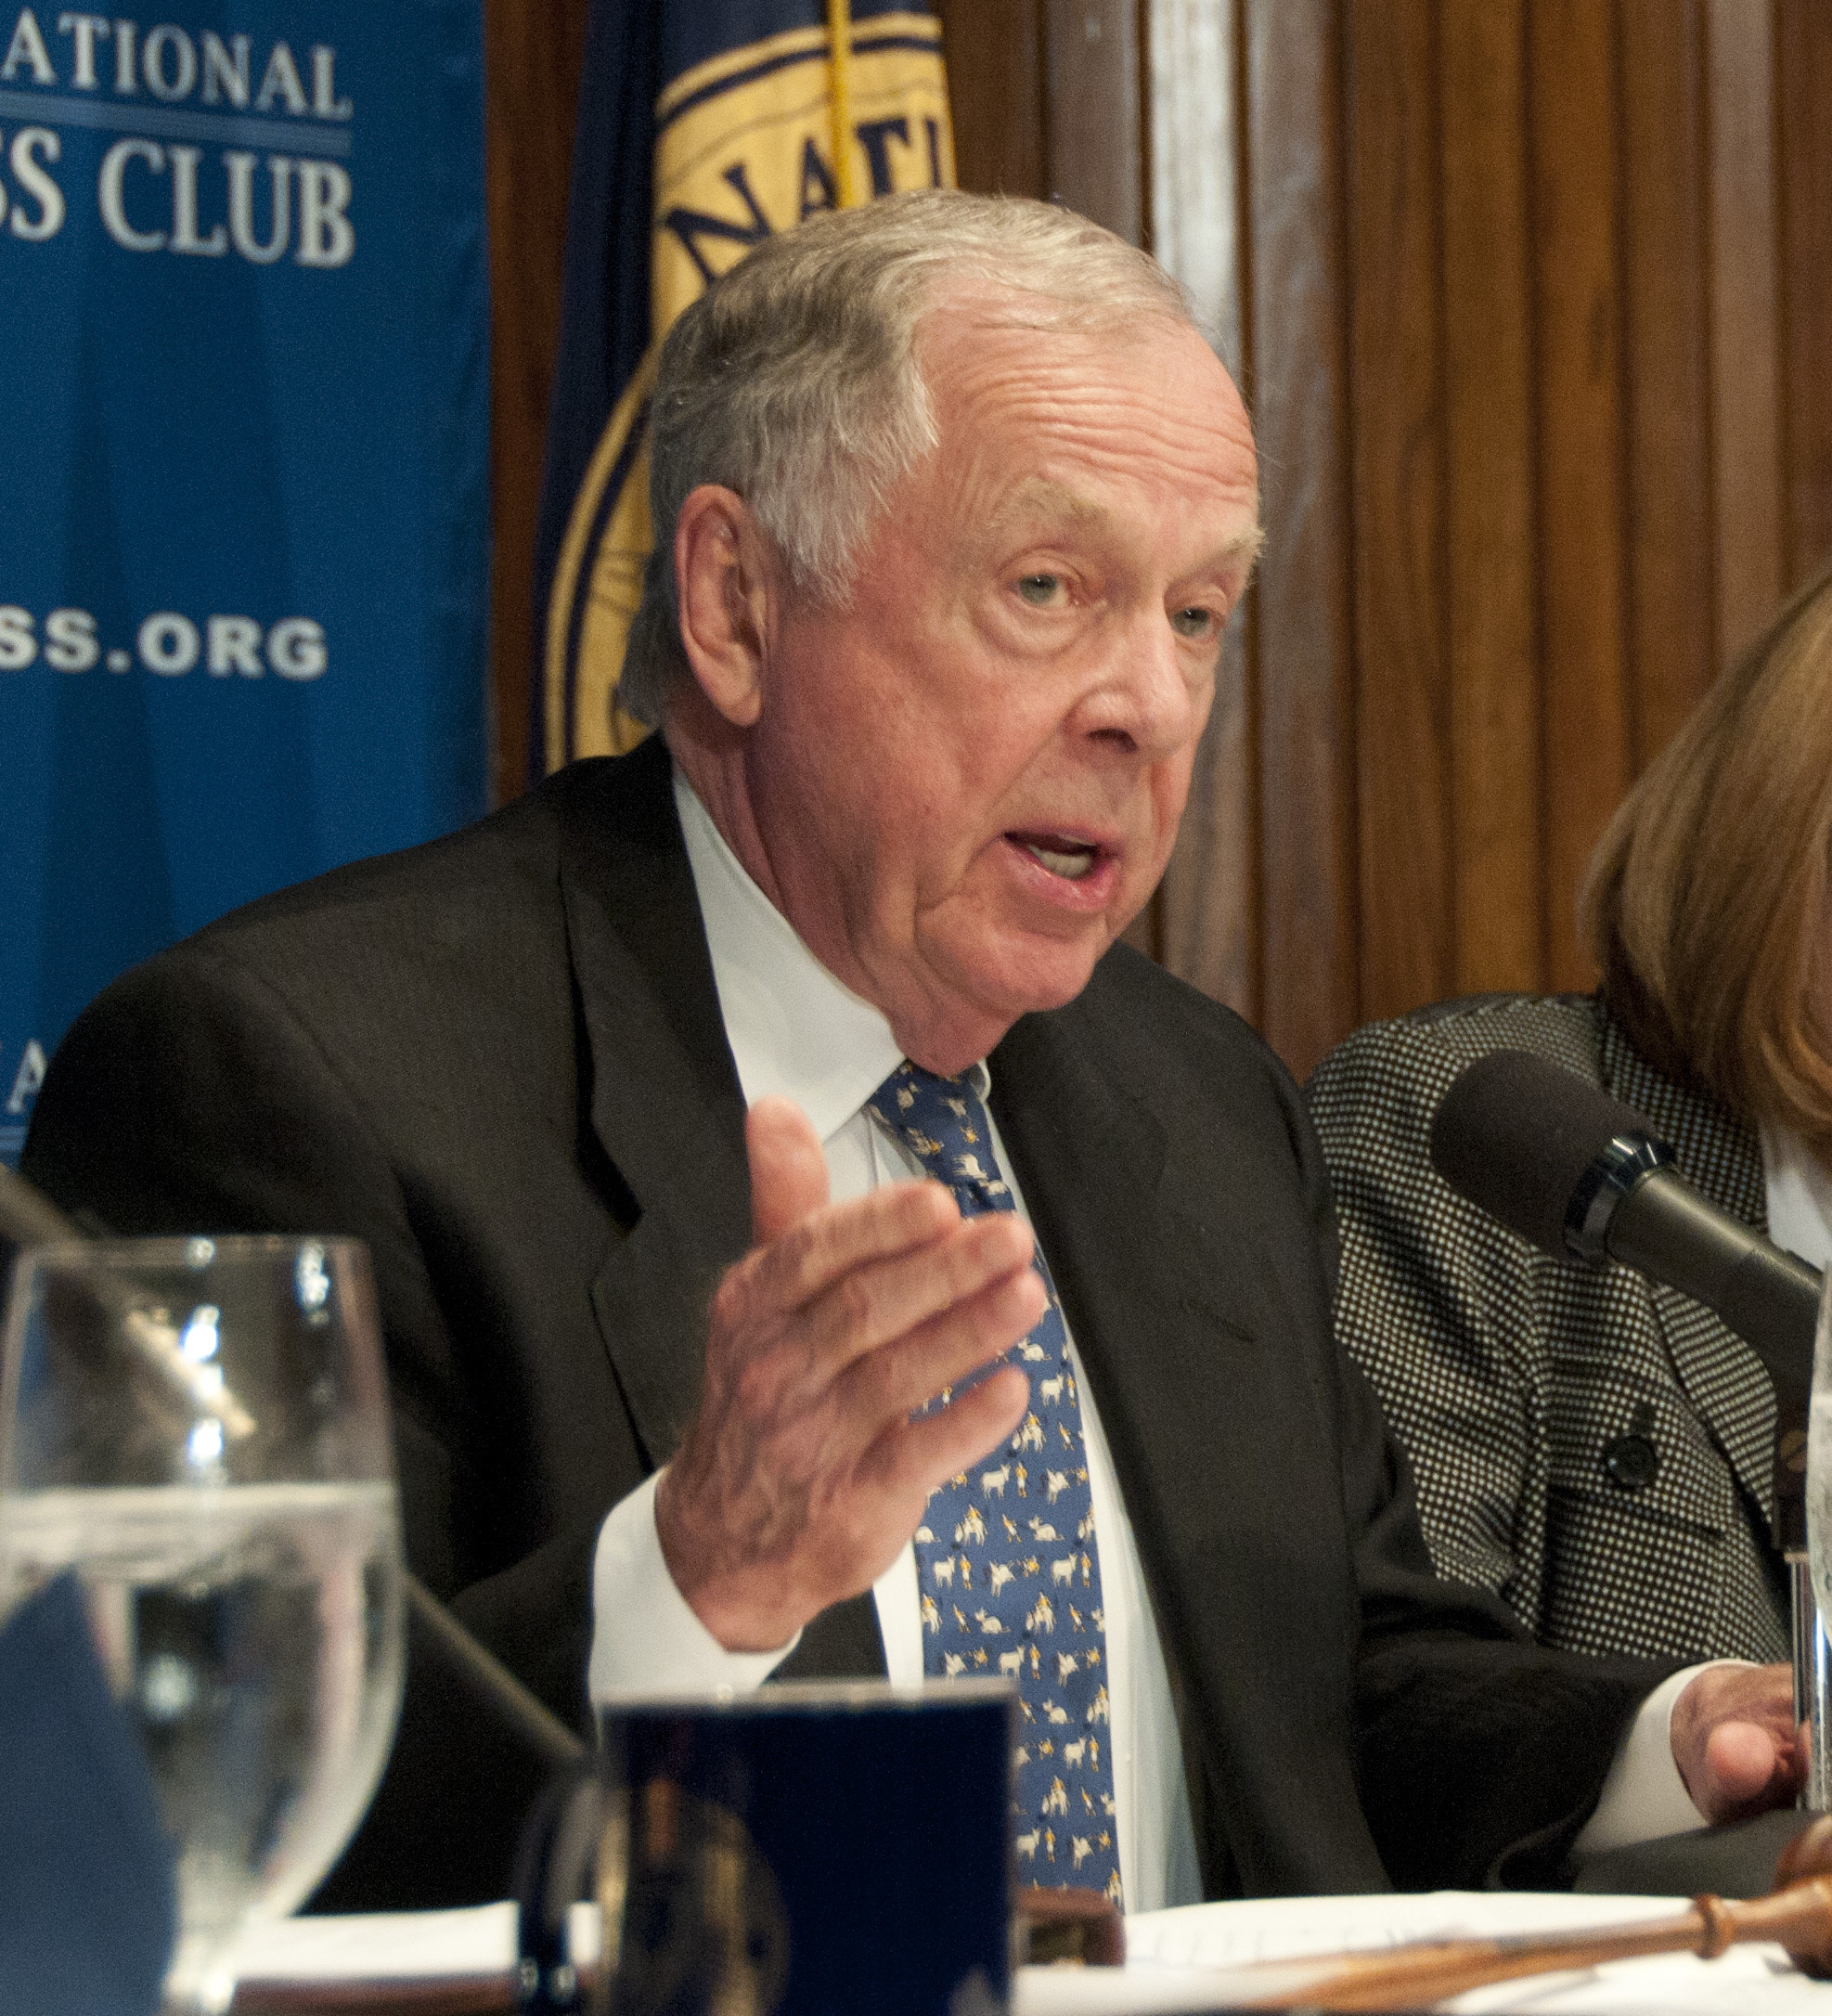 American financier and investor T. Boone Pickens spoke on energy policy at the National Press Club on April 19, 2011, in Washington, DC. (Source: Albert H. Teich/Shutterstock.com)